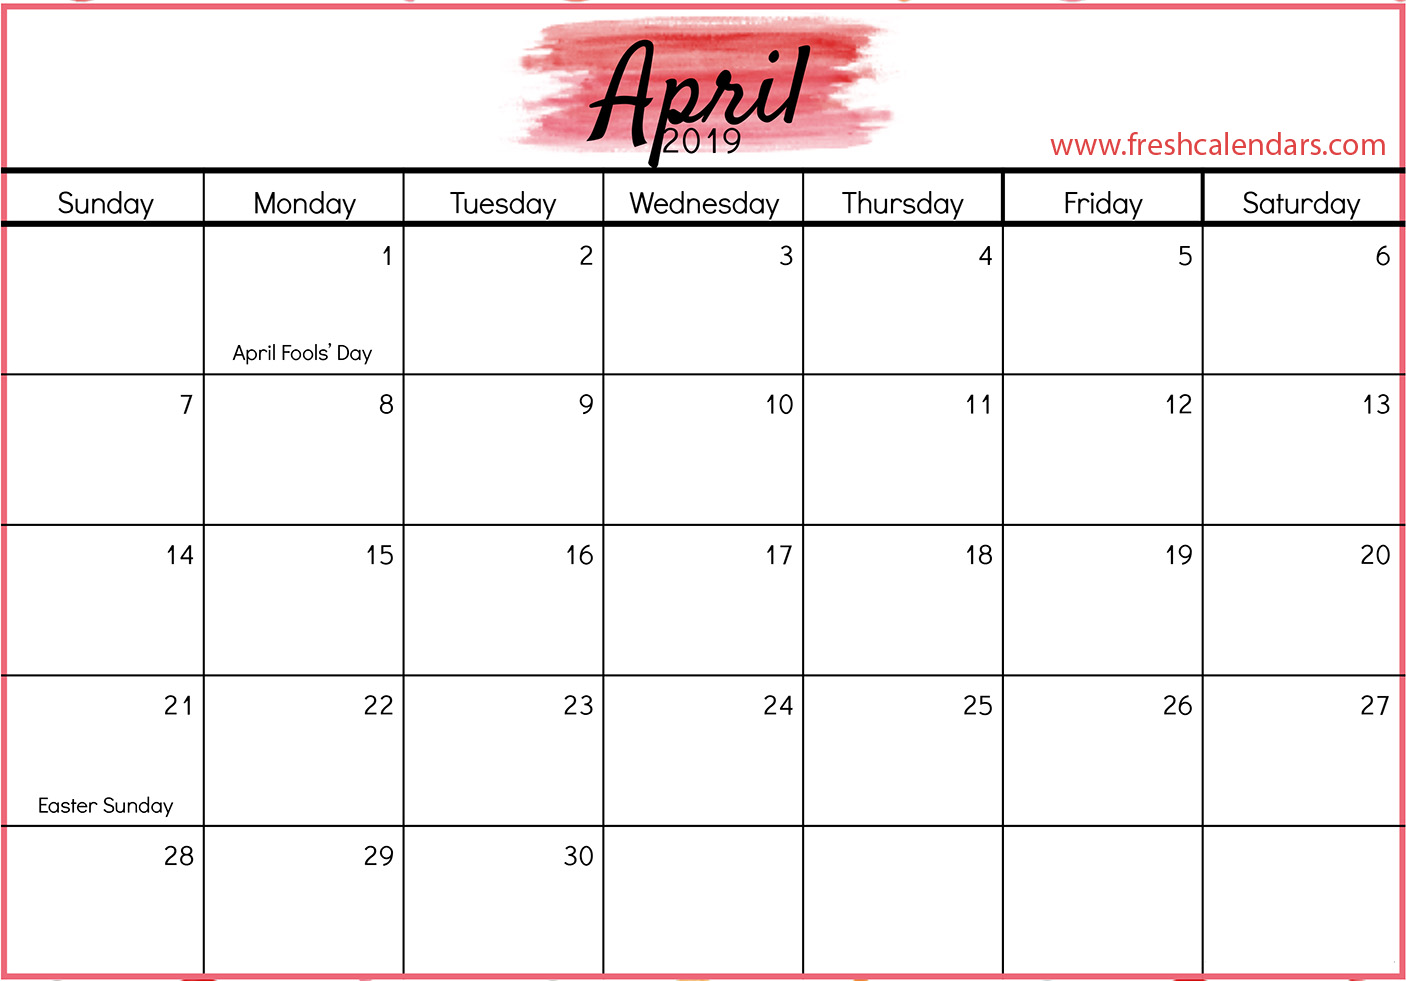 Printable April 2019 Calendar - Fresh Calendars 2019 Calendar April 2019 Calendars Red Template